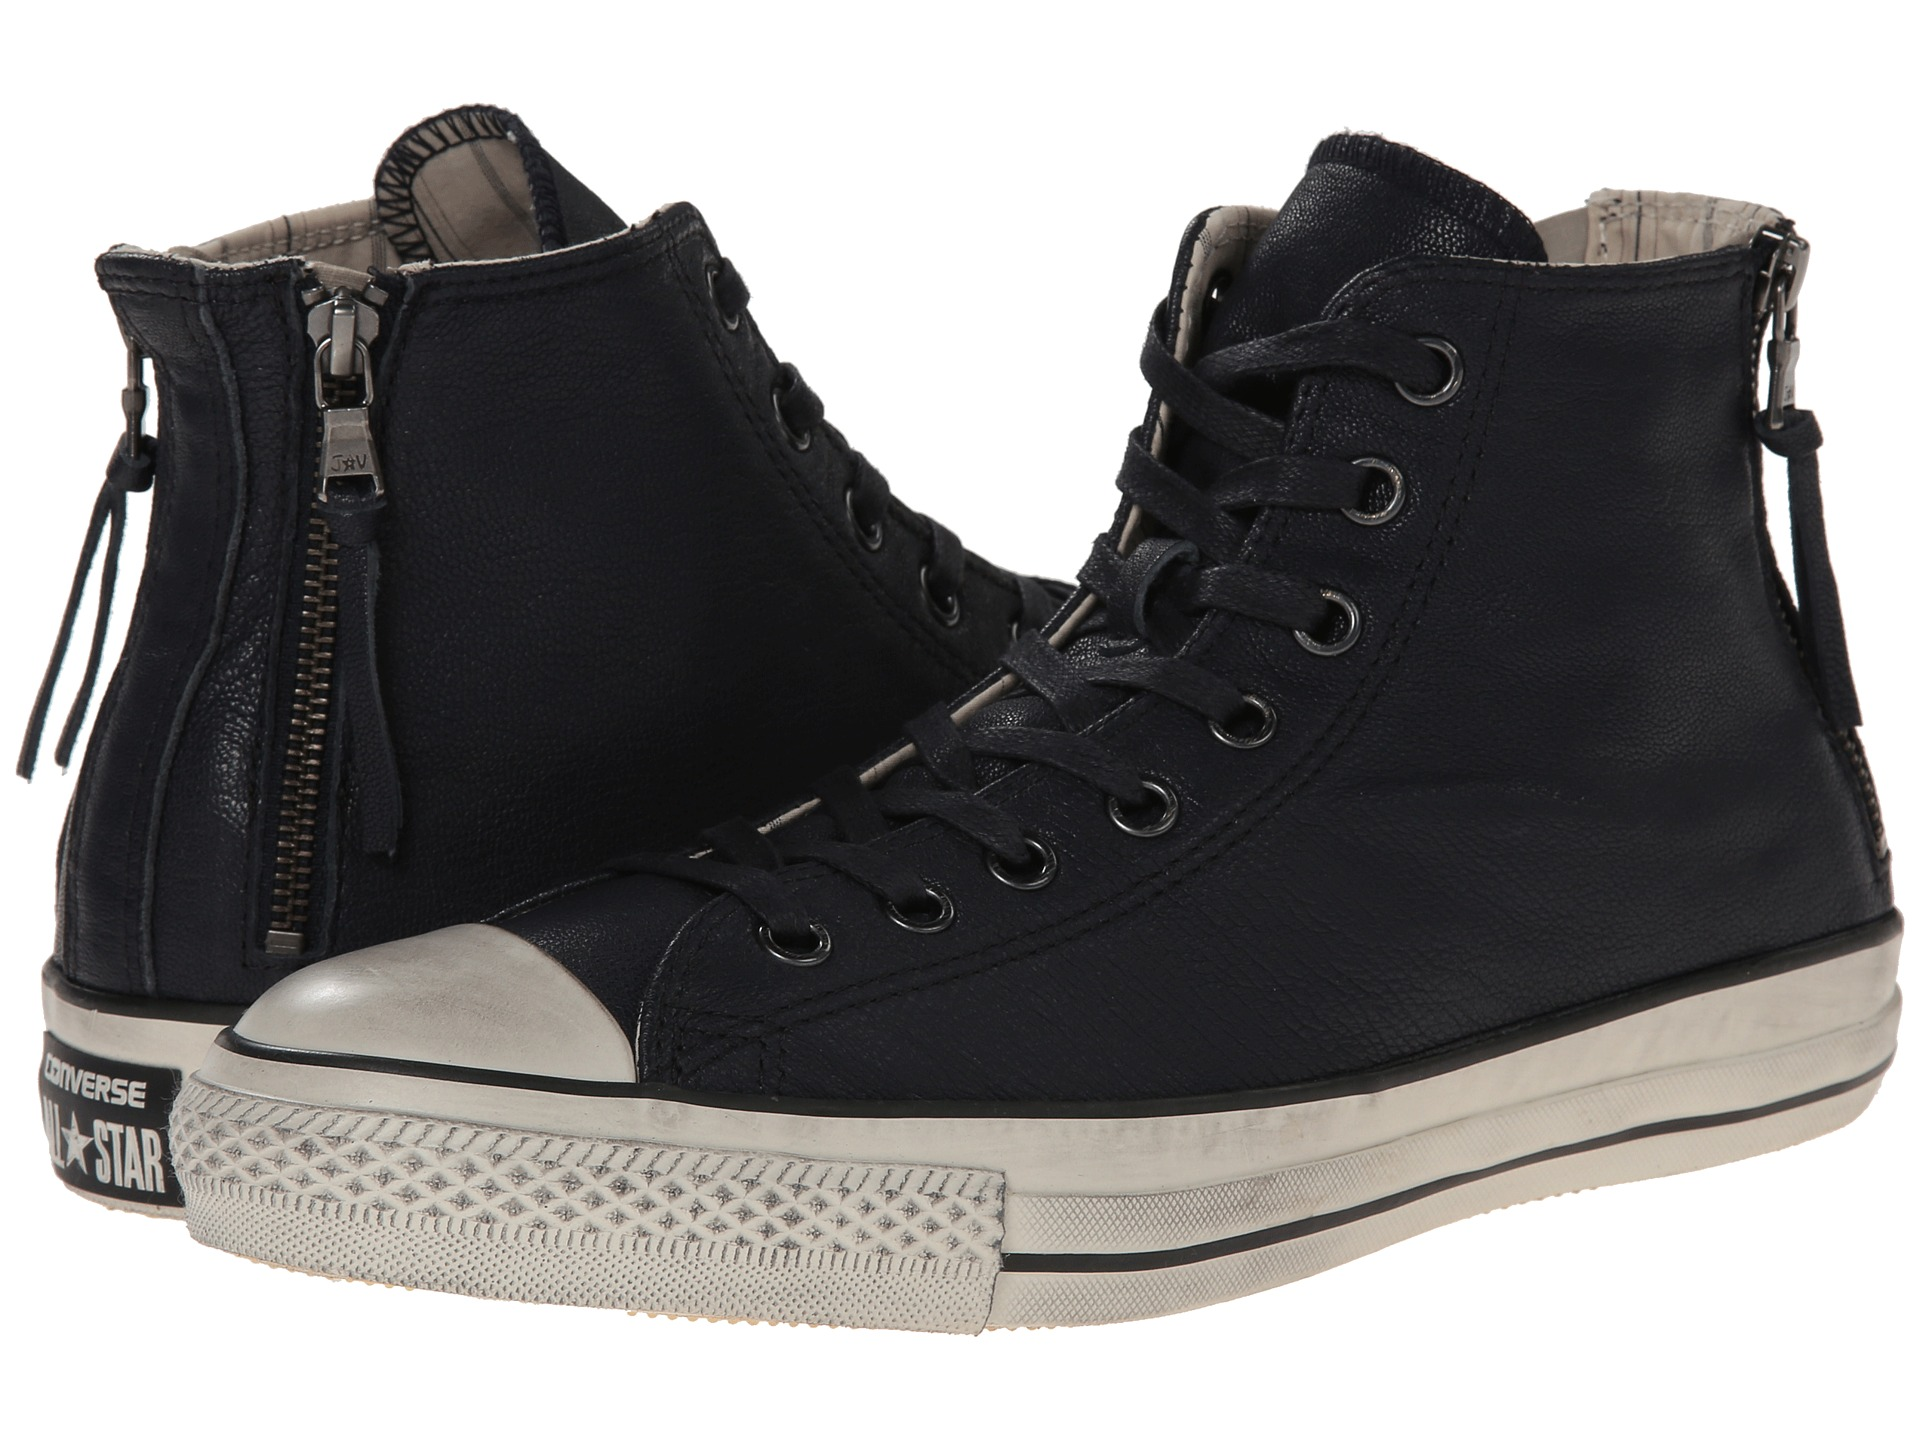 converse by john varvatos chuck taylor all star double heel zip quito leather dark navy toast. Black Bedroom Furniture Sets. Home Design Ideas